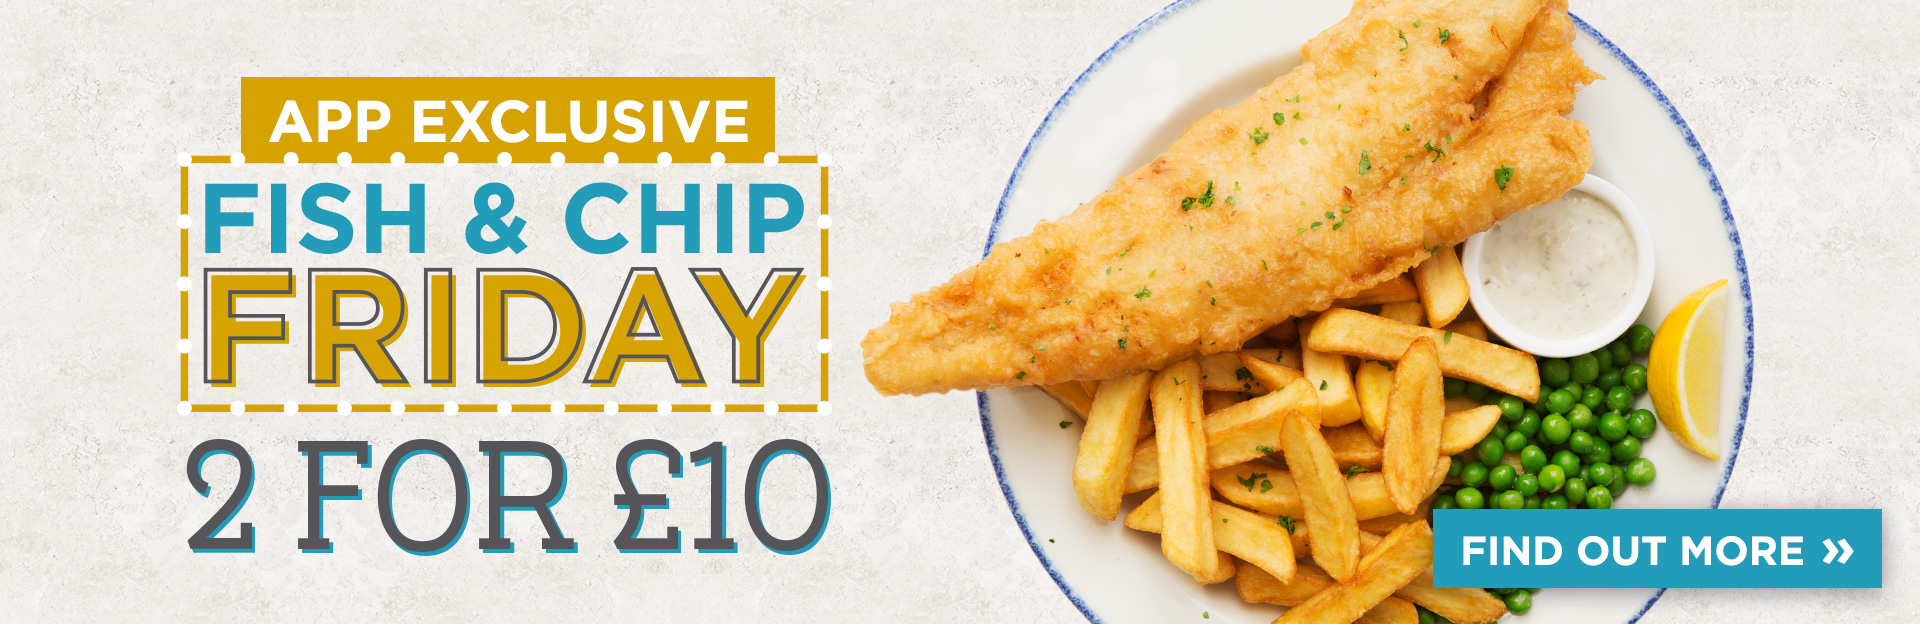 Fish & Chip Friday at The Bulls Head